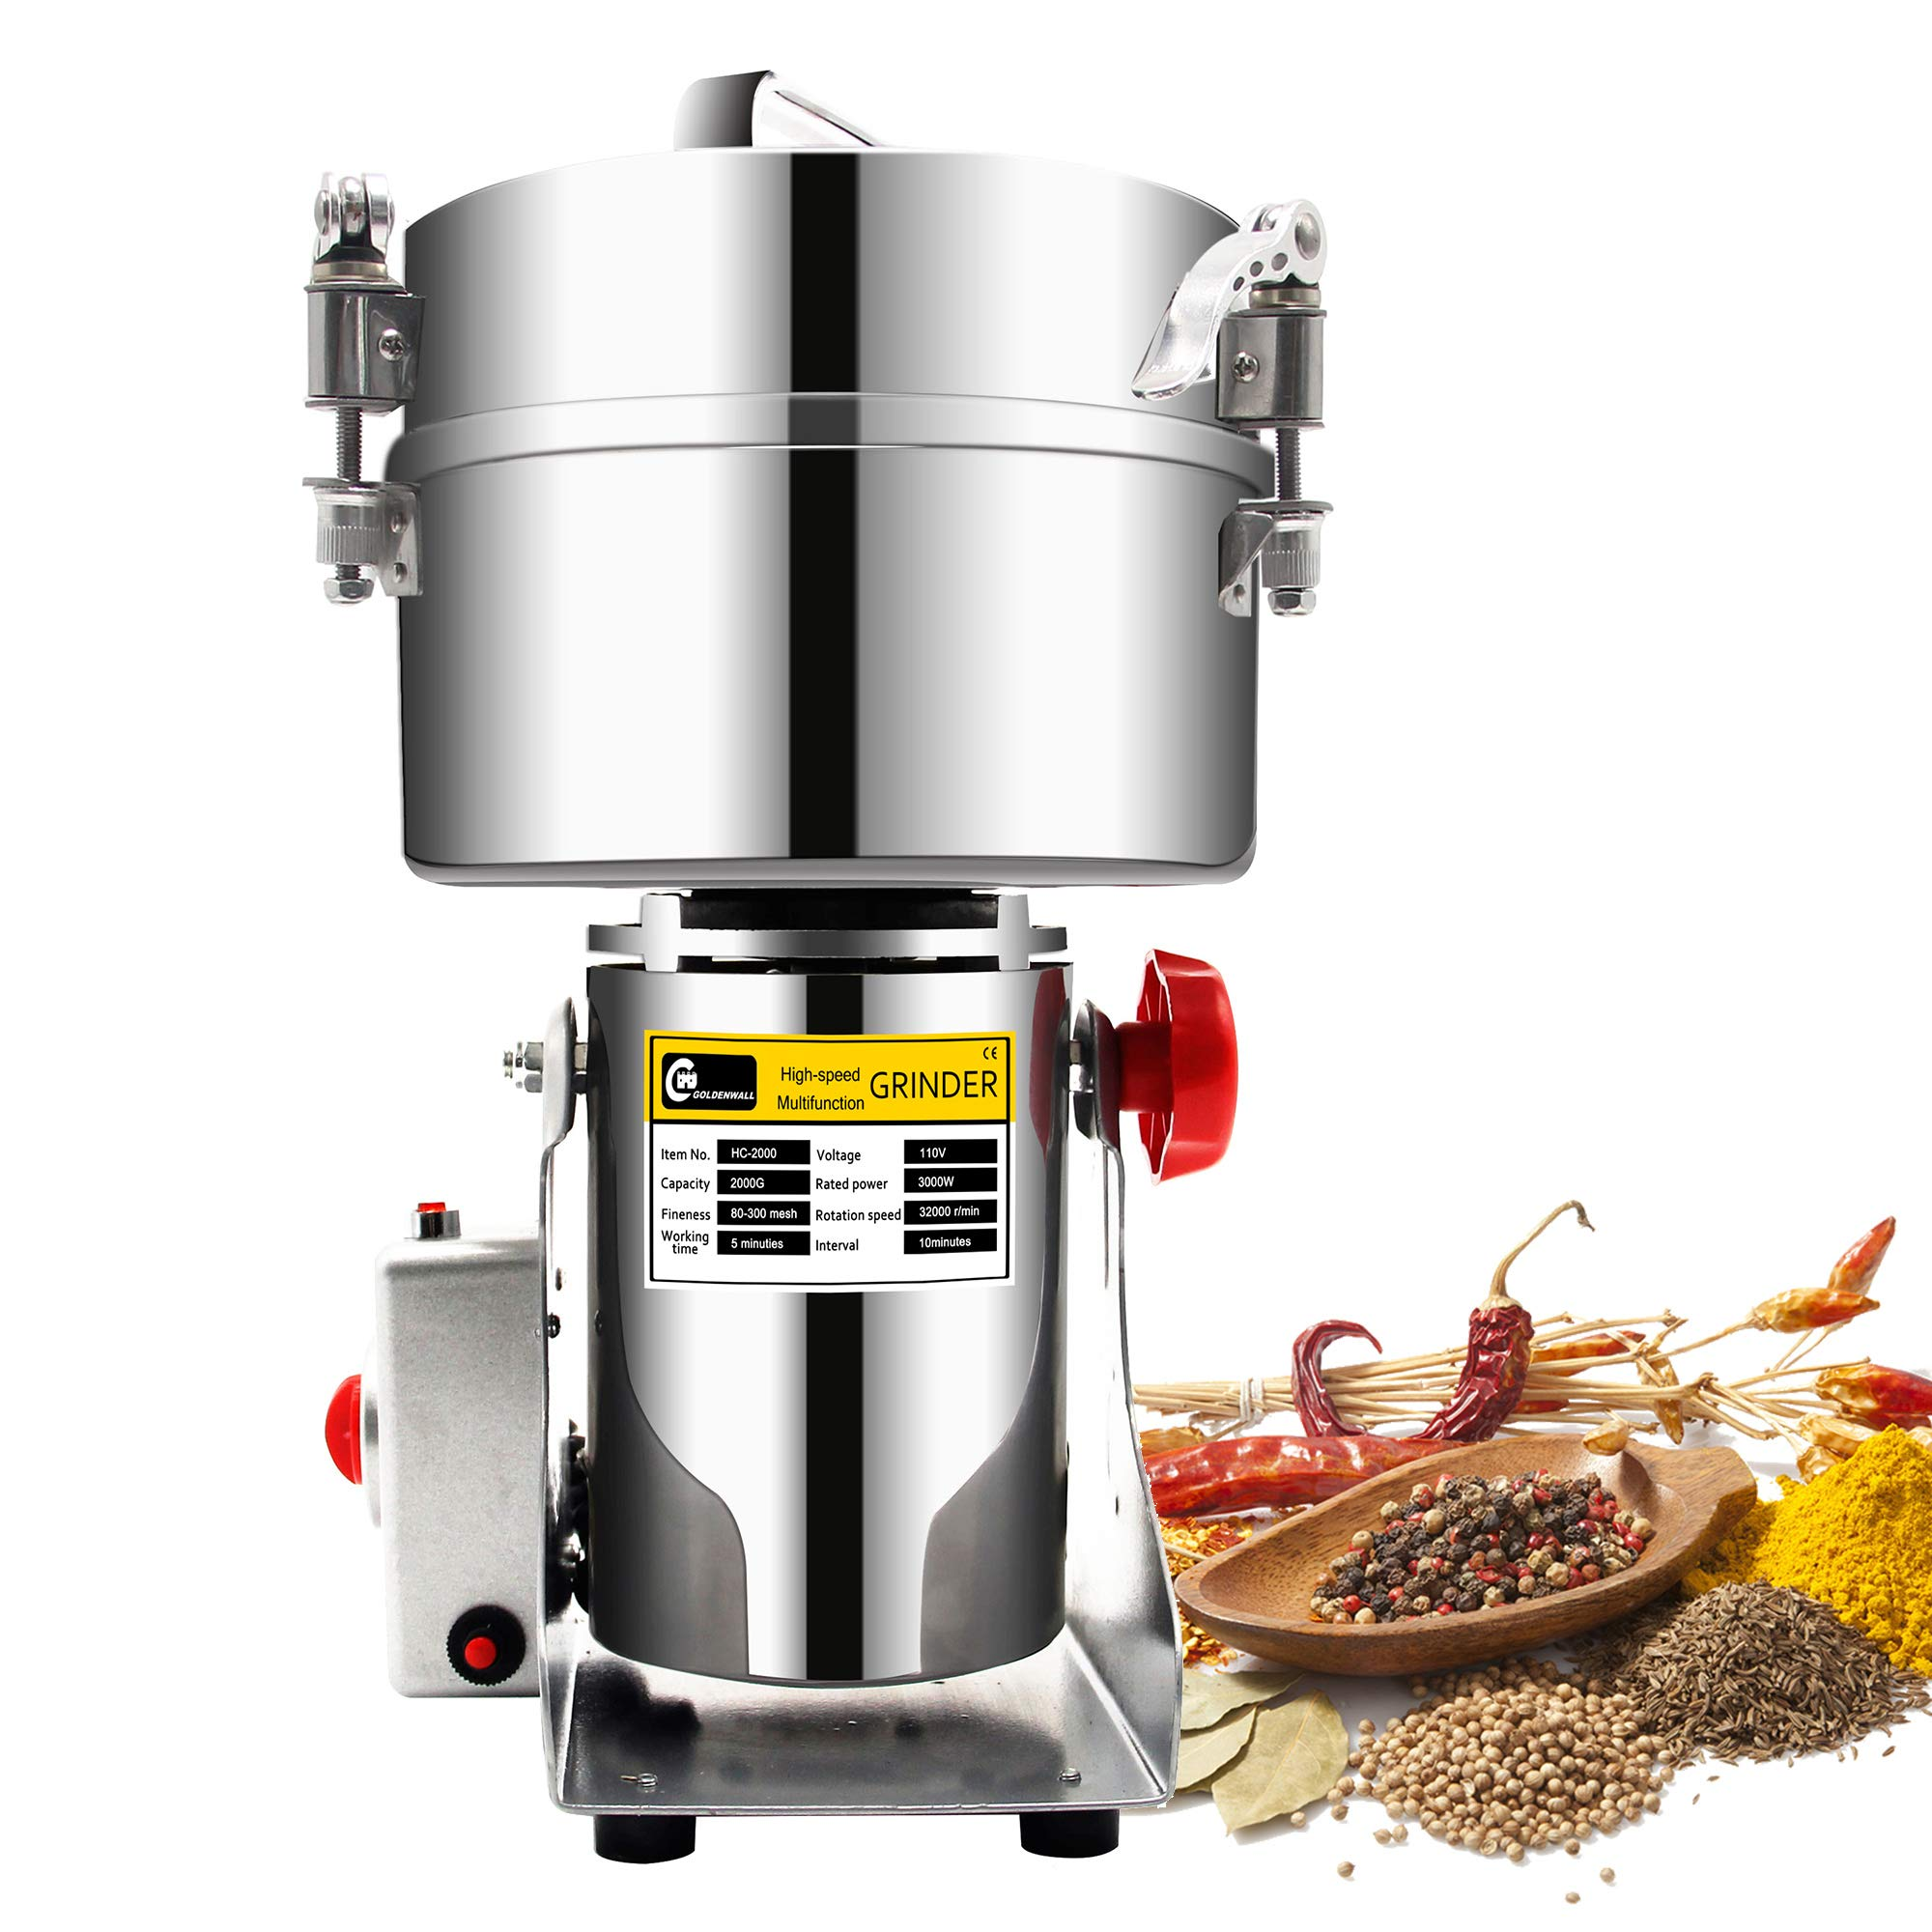 CGOLDENWALL 2500g Commercial Electric Grain Grinder Mill Spice Grinder Grain Powder Grinder Grinding Machine Chinese medicine Spice Herb Grinder Flour Mill Pulverizer CE approved by CGOLDENWALL